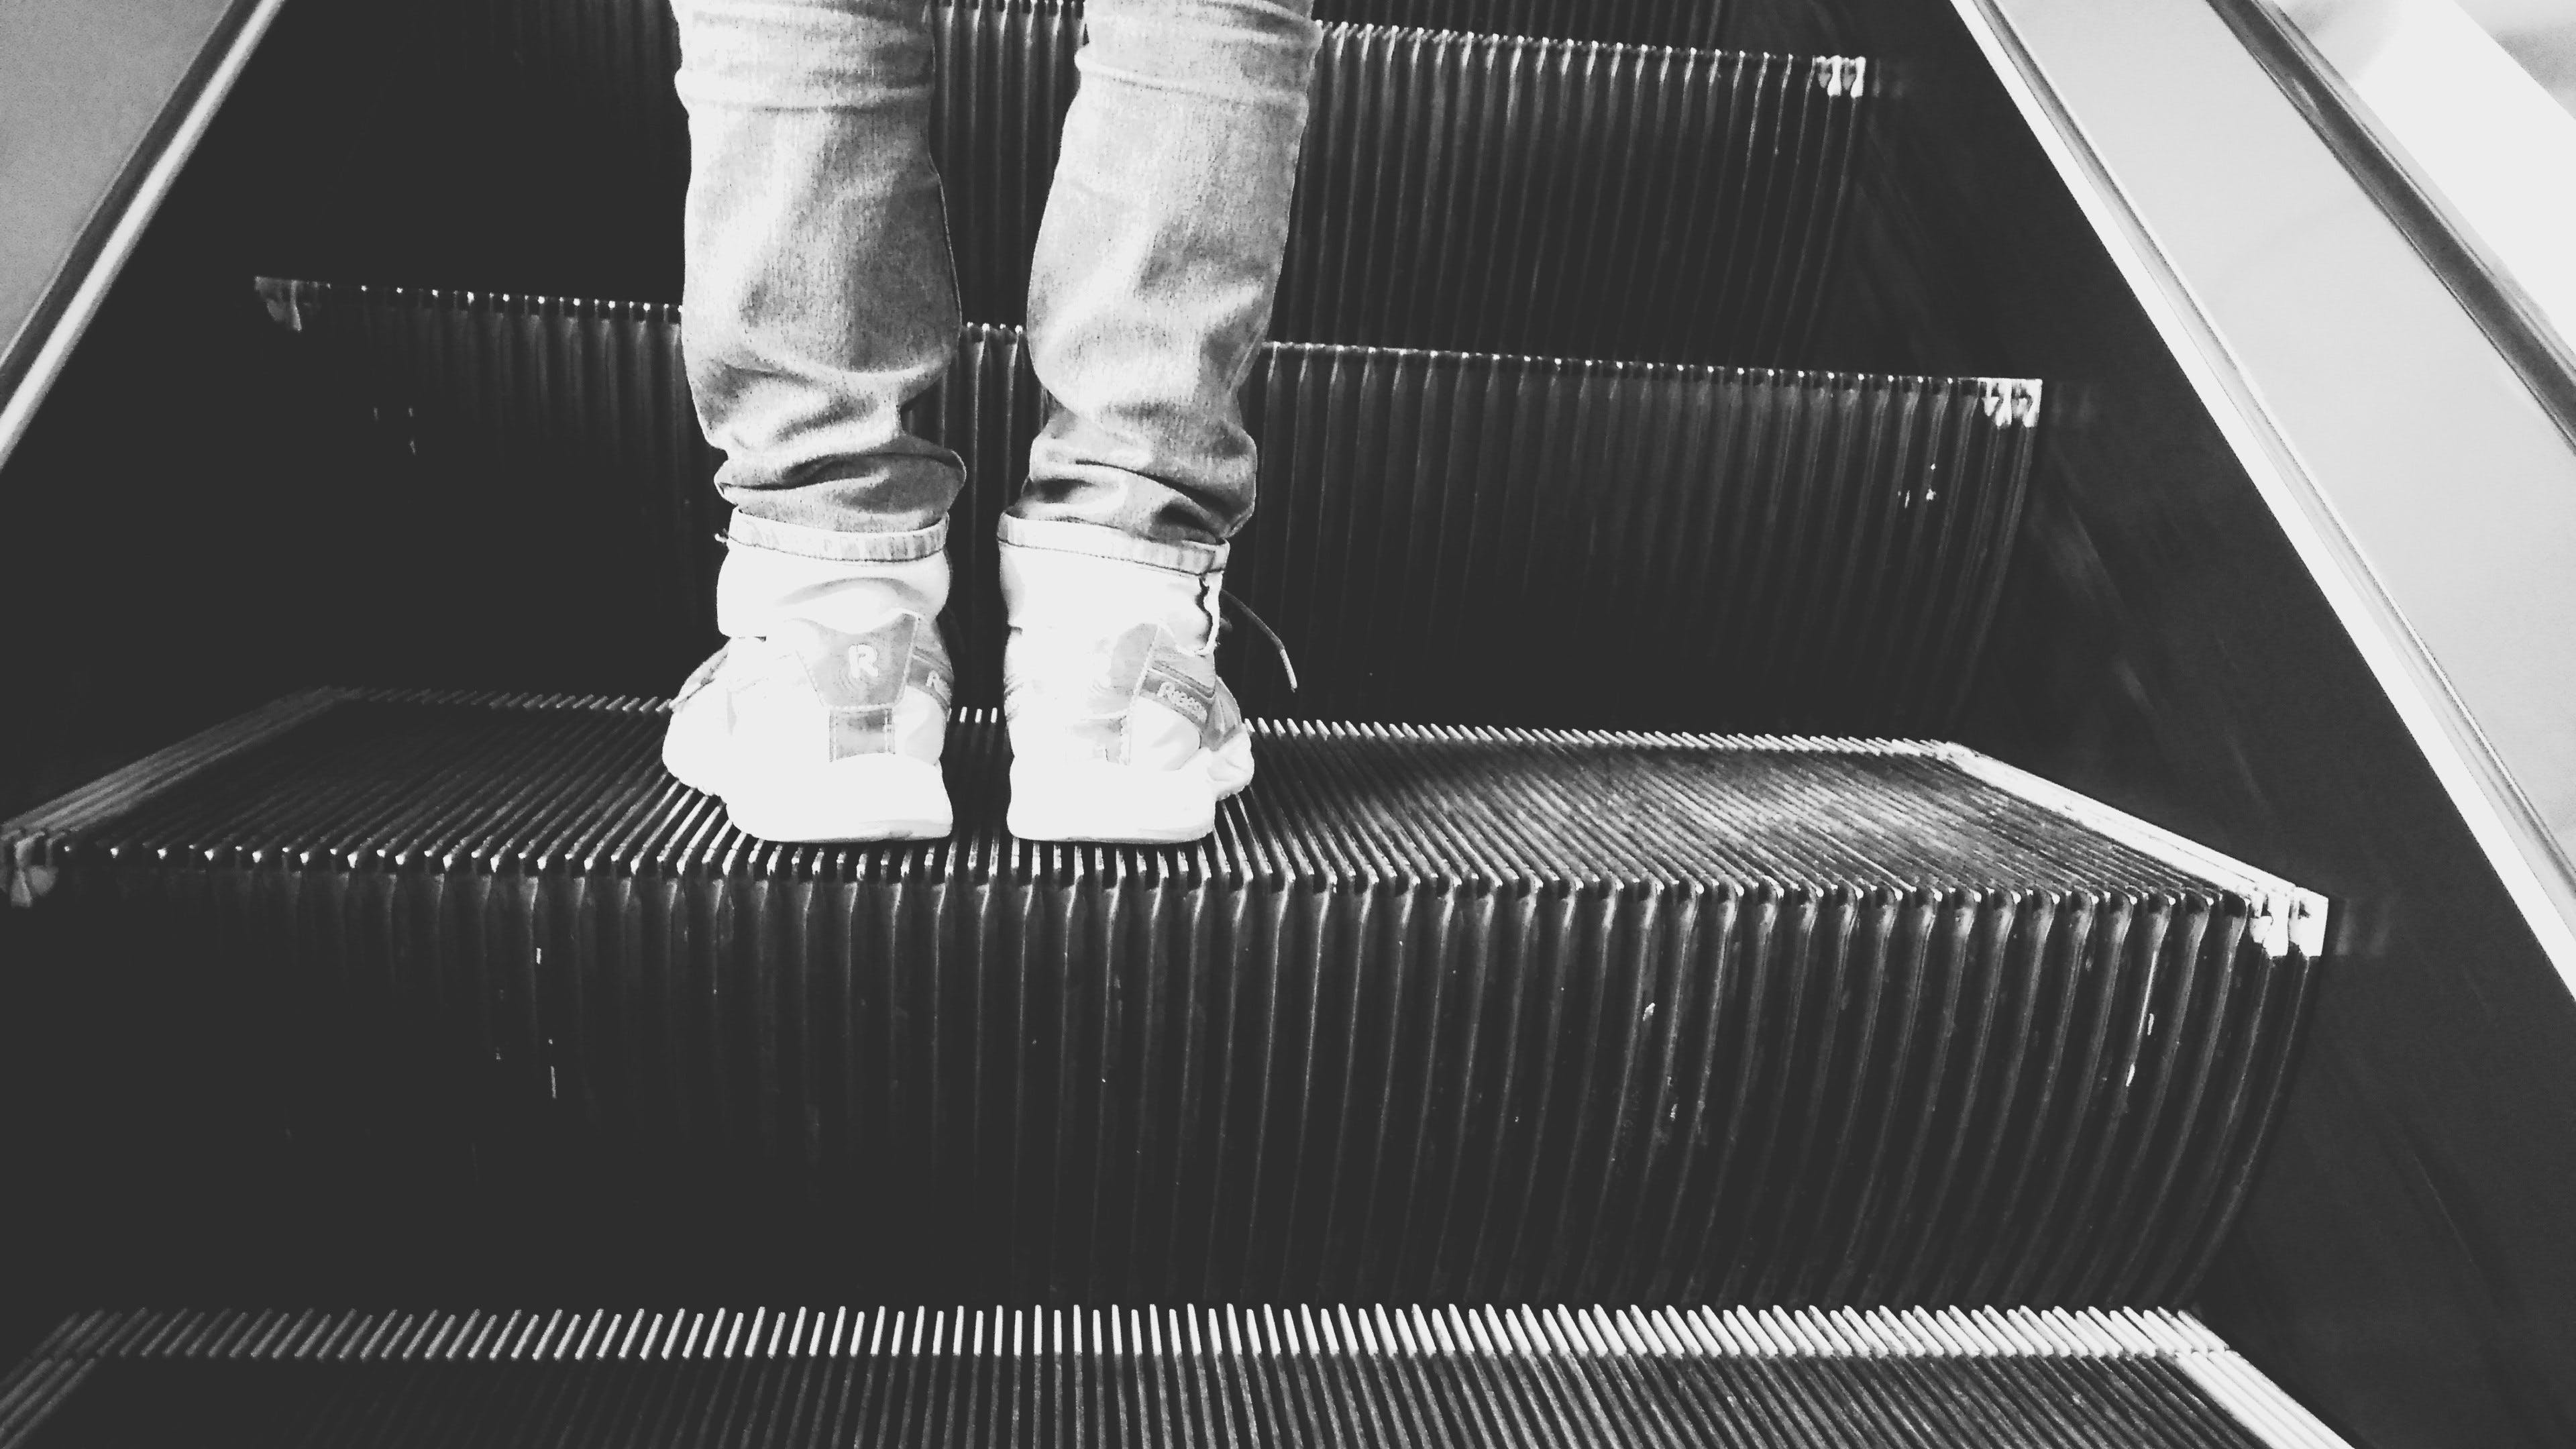 Grayscale Photo of Person Standing on Esclator